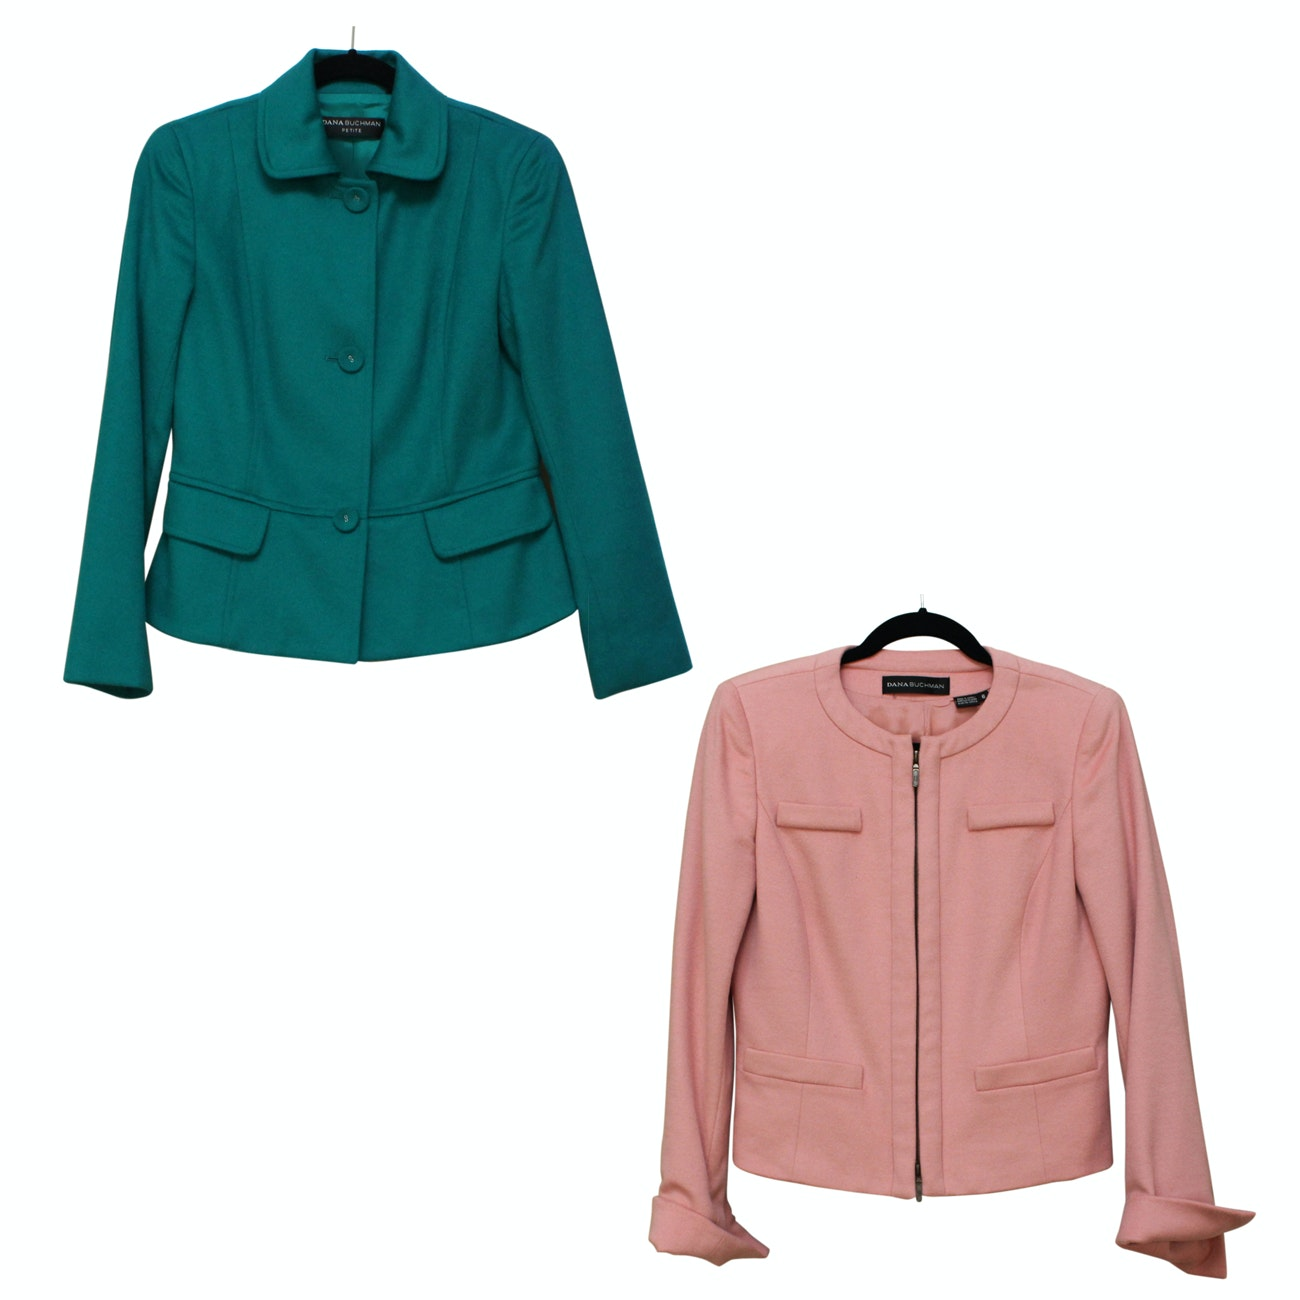 Two Dana Buchman Cashmere Jackets in Teal and Pink